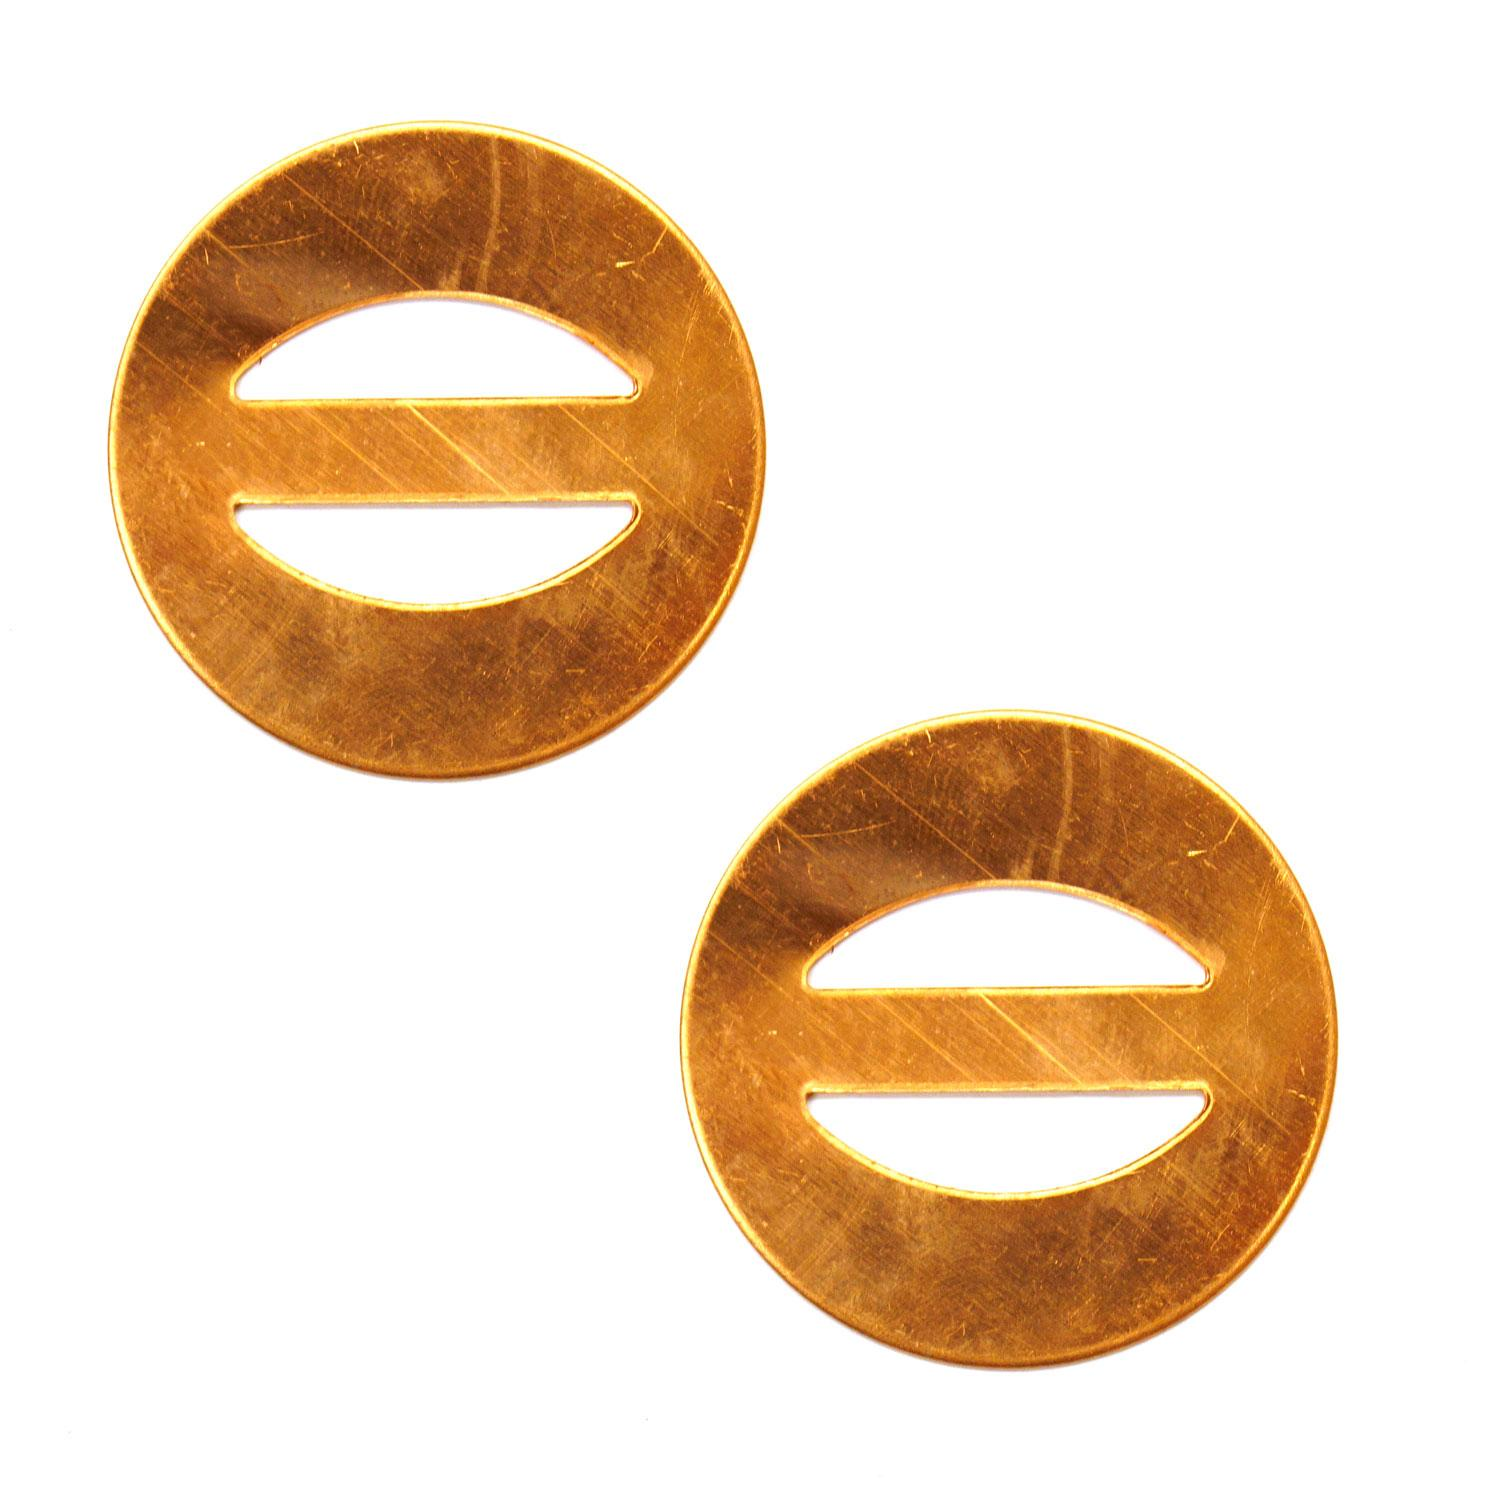 Small Round Scarf Buckle Copper Shape - 2 Pack